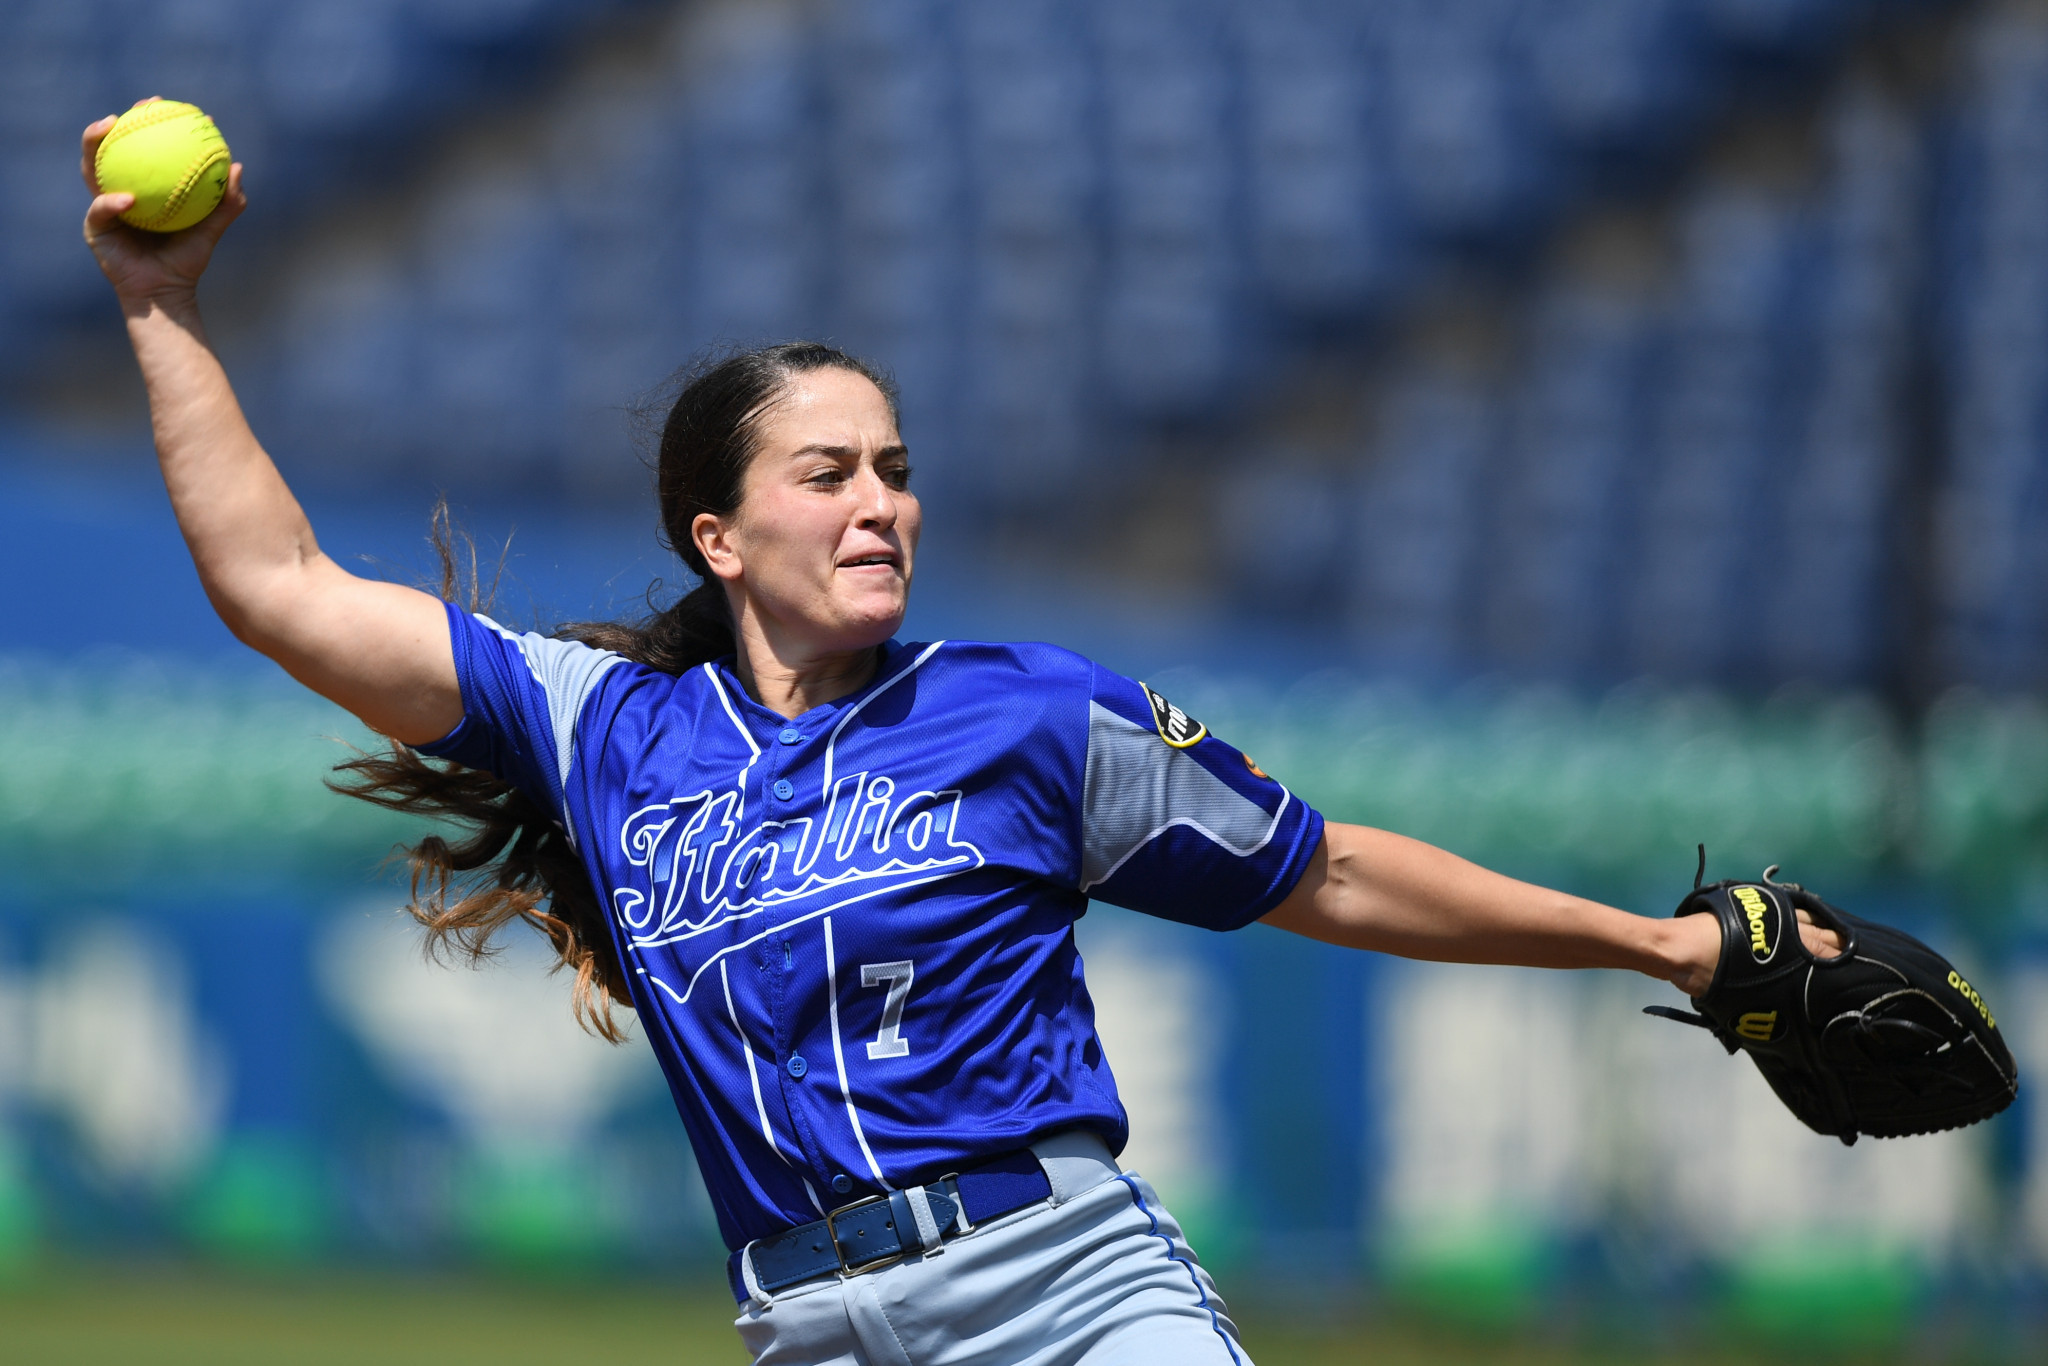 Italian softball team to attend pre-Olympics training camp in December